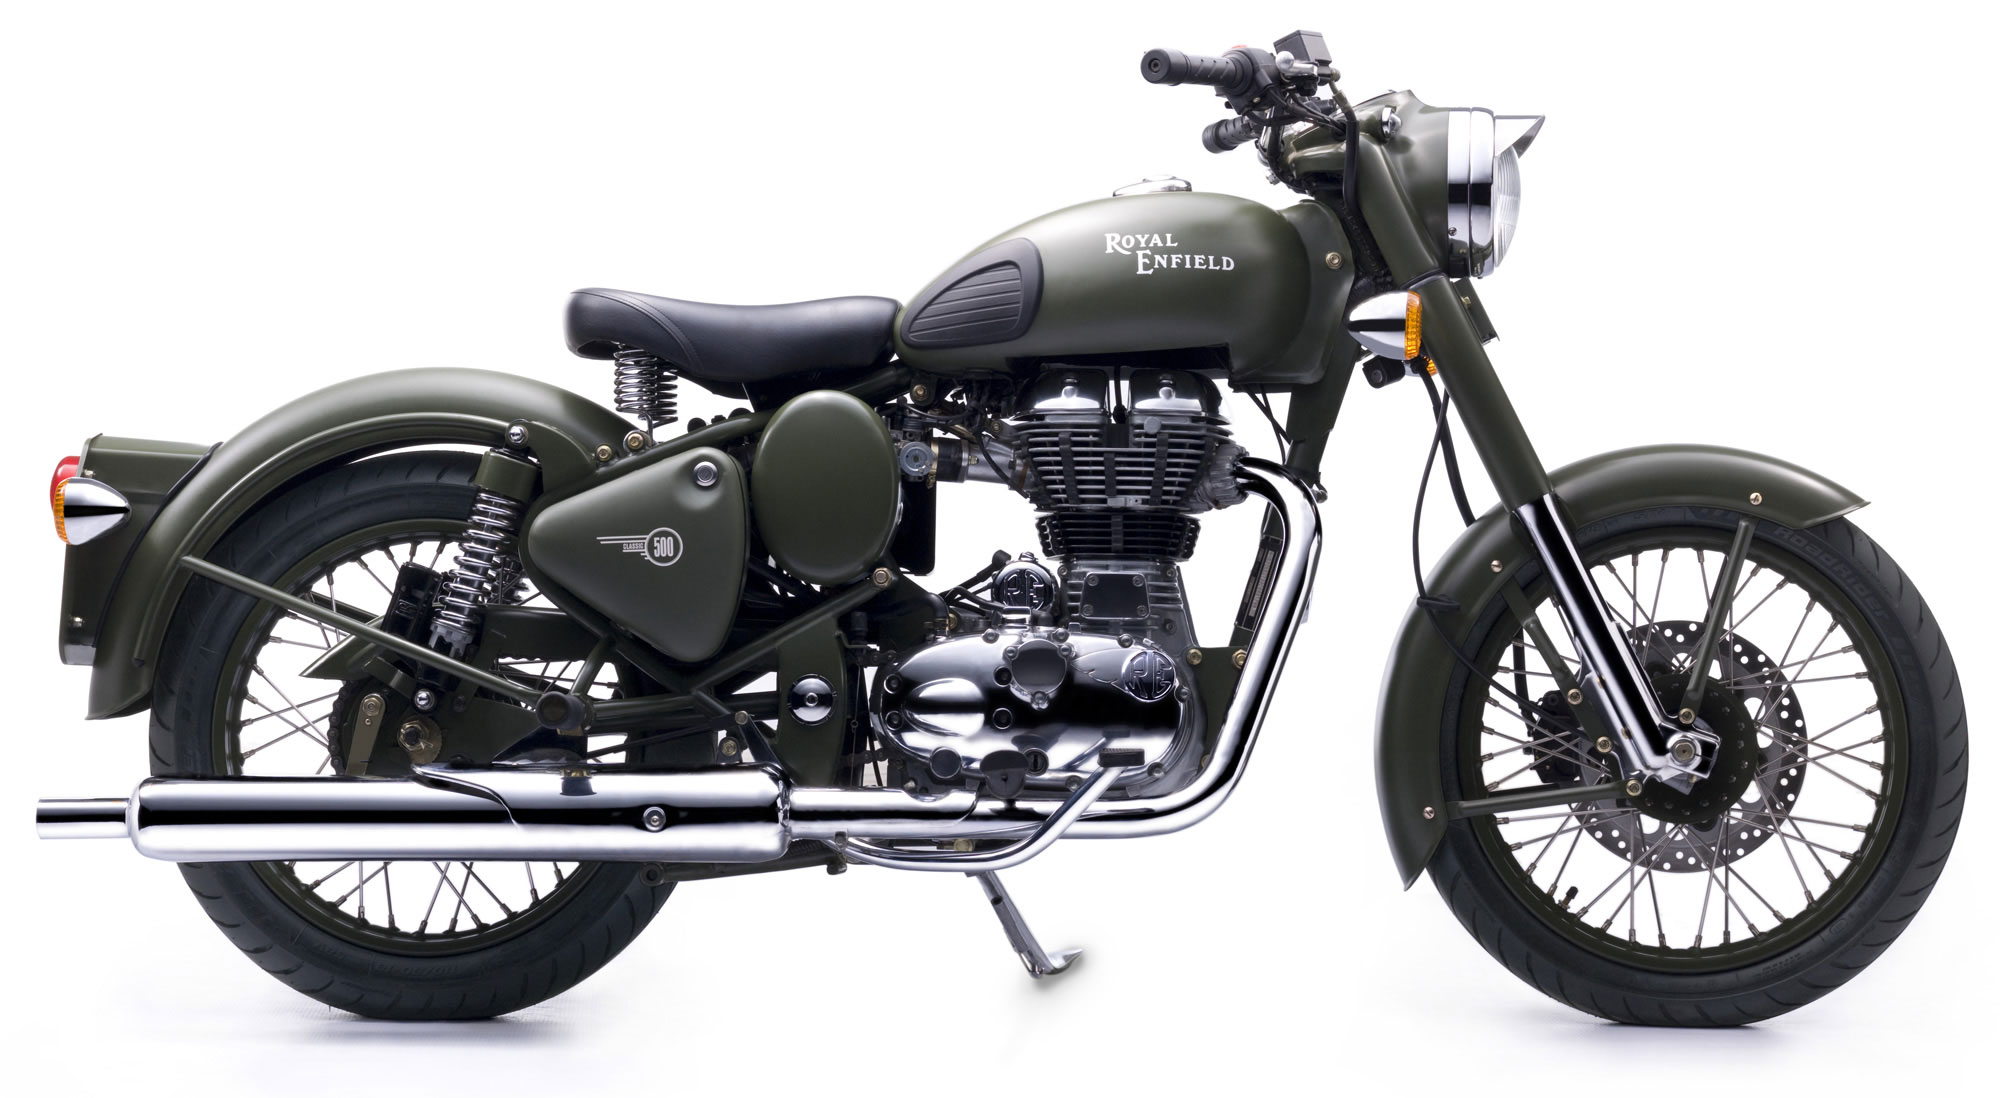 Royal Enfield Bullet 350 Army 1990 images #122687